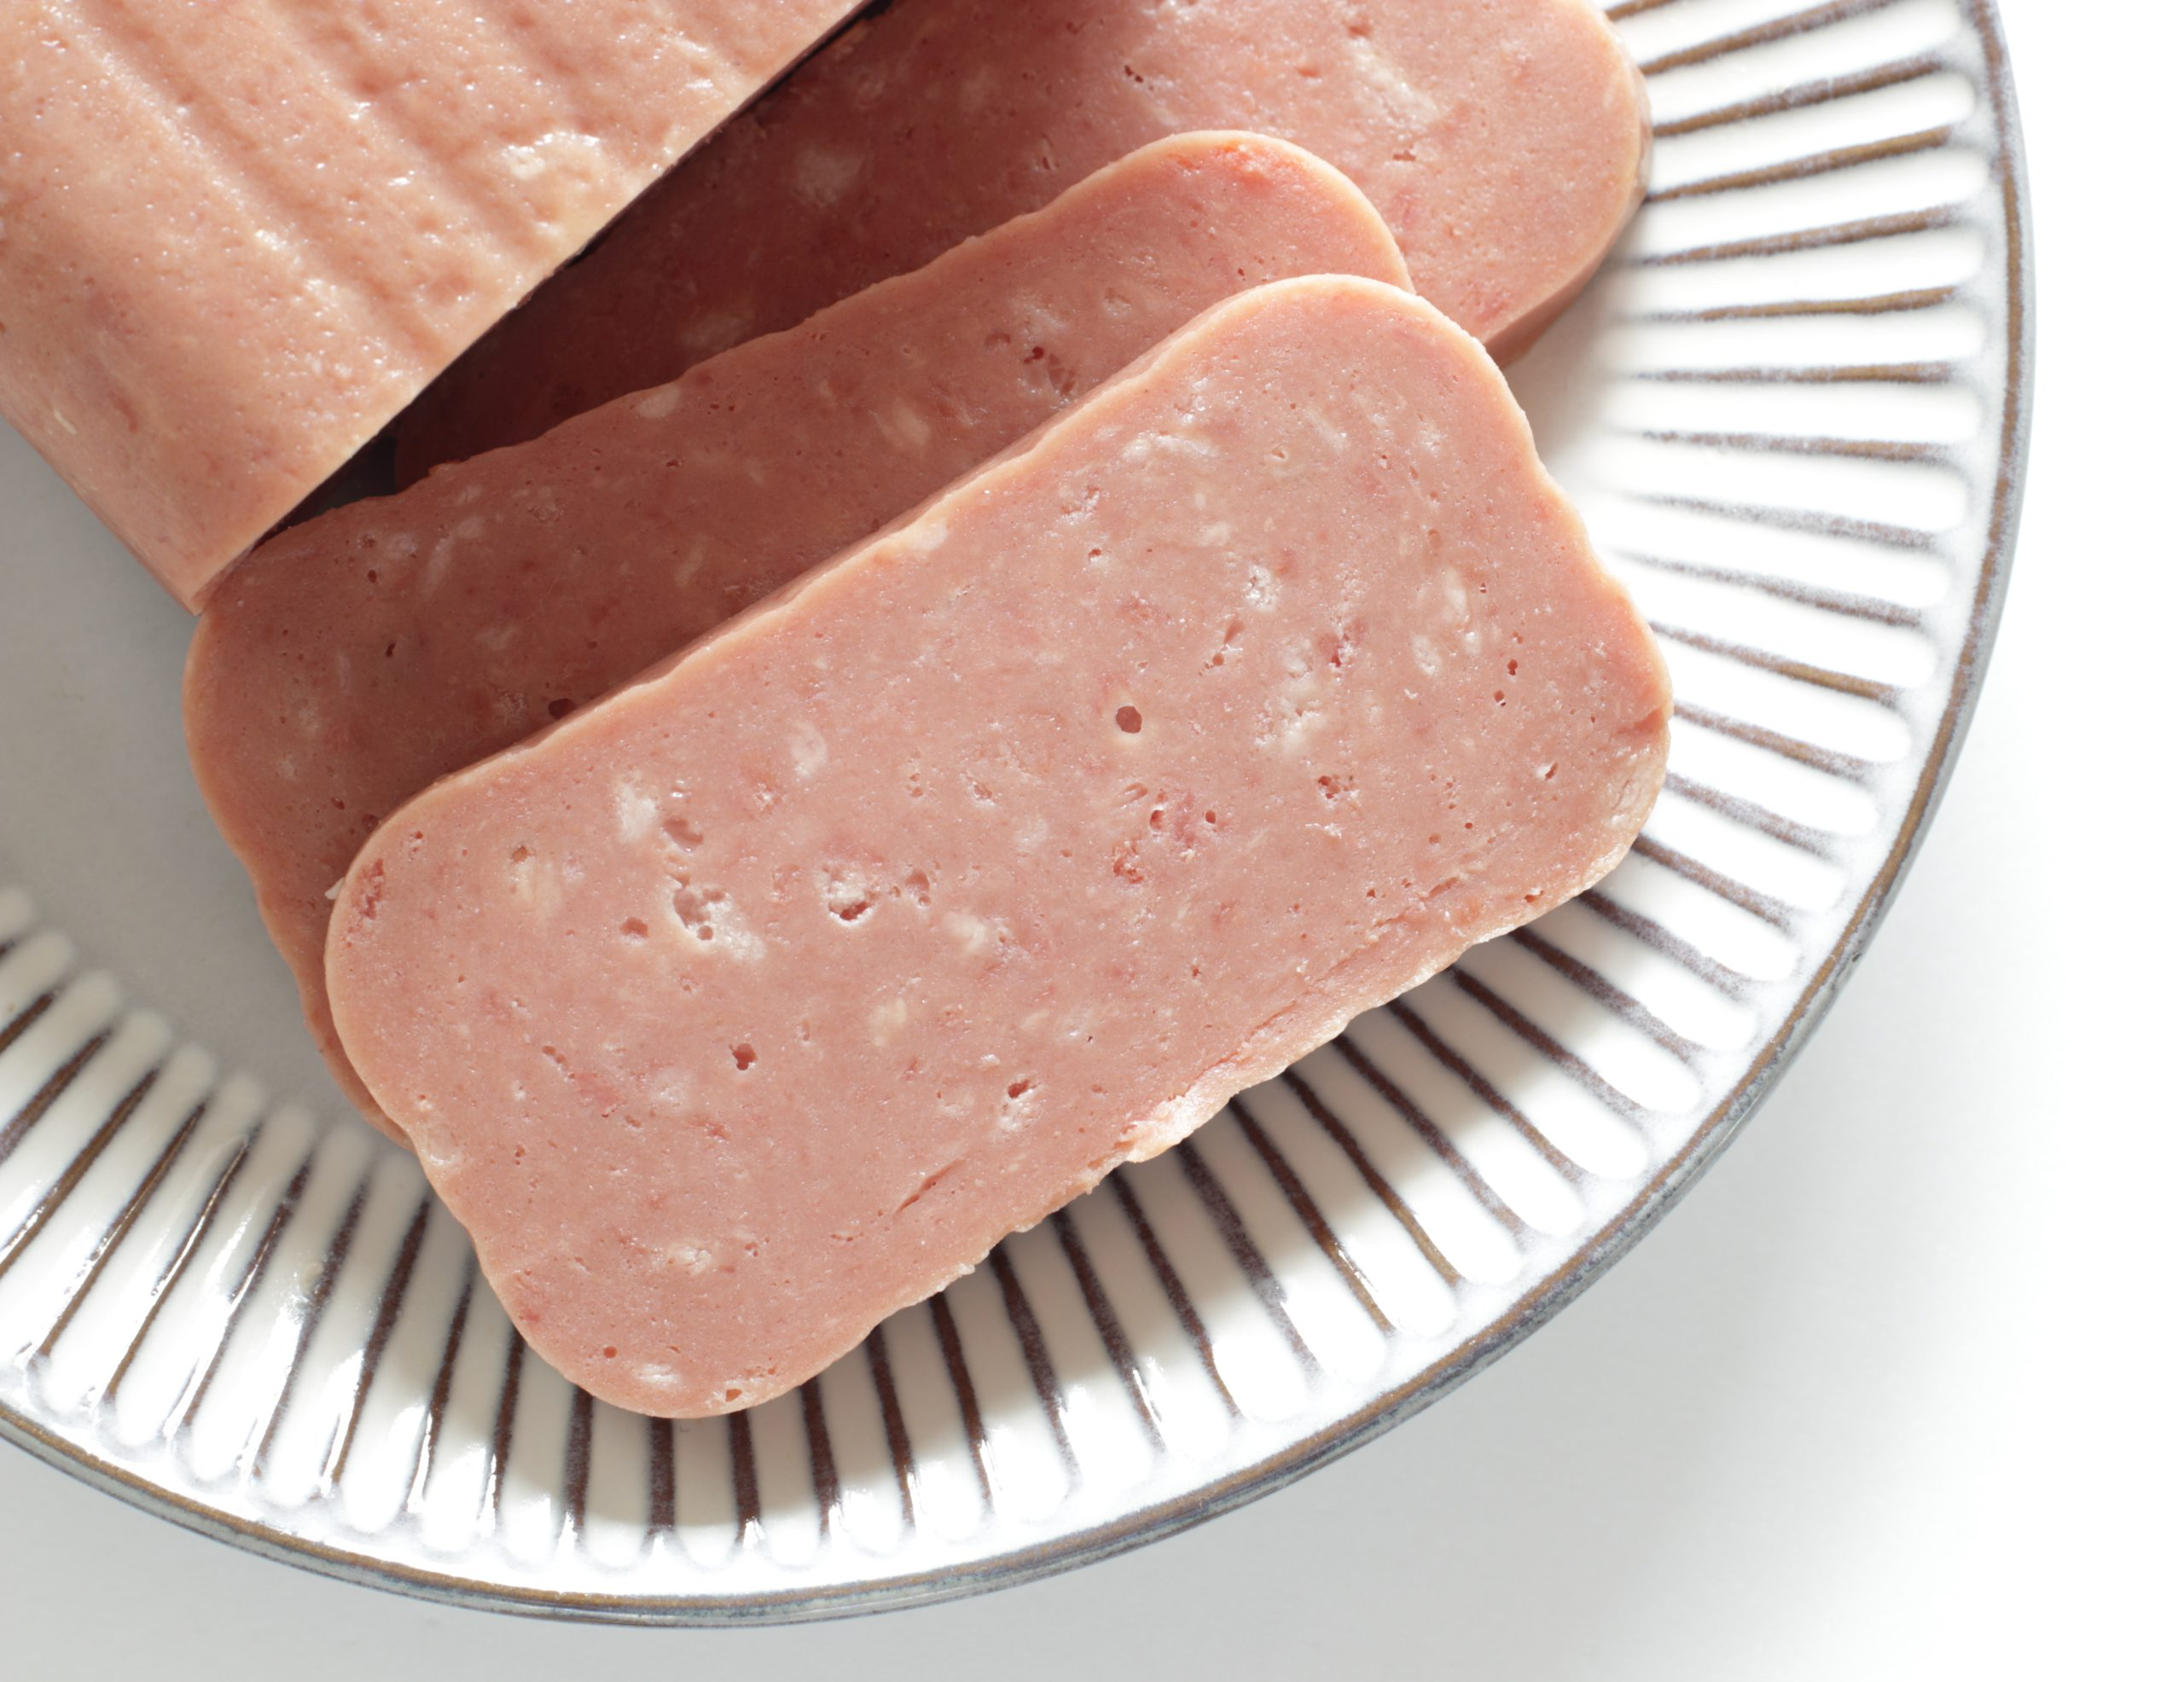 Luncheon meat sliced and resting on a plate isolated on a white background.